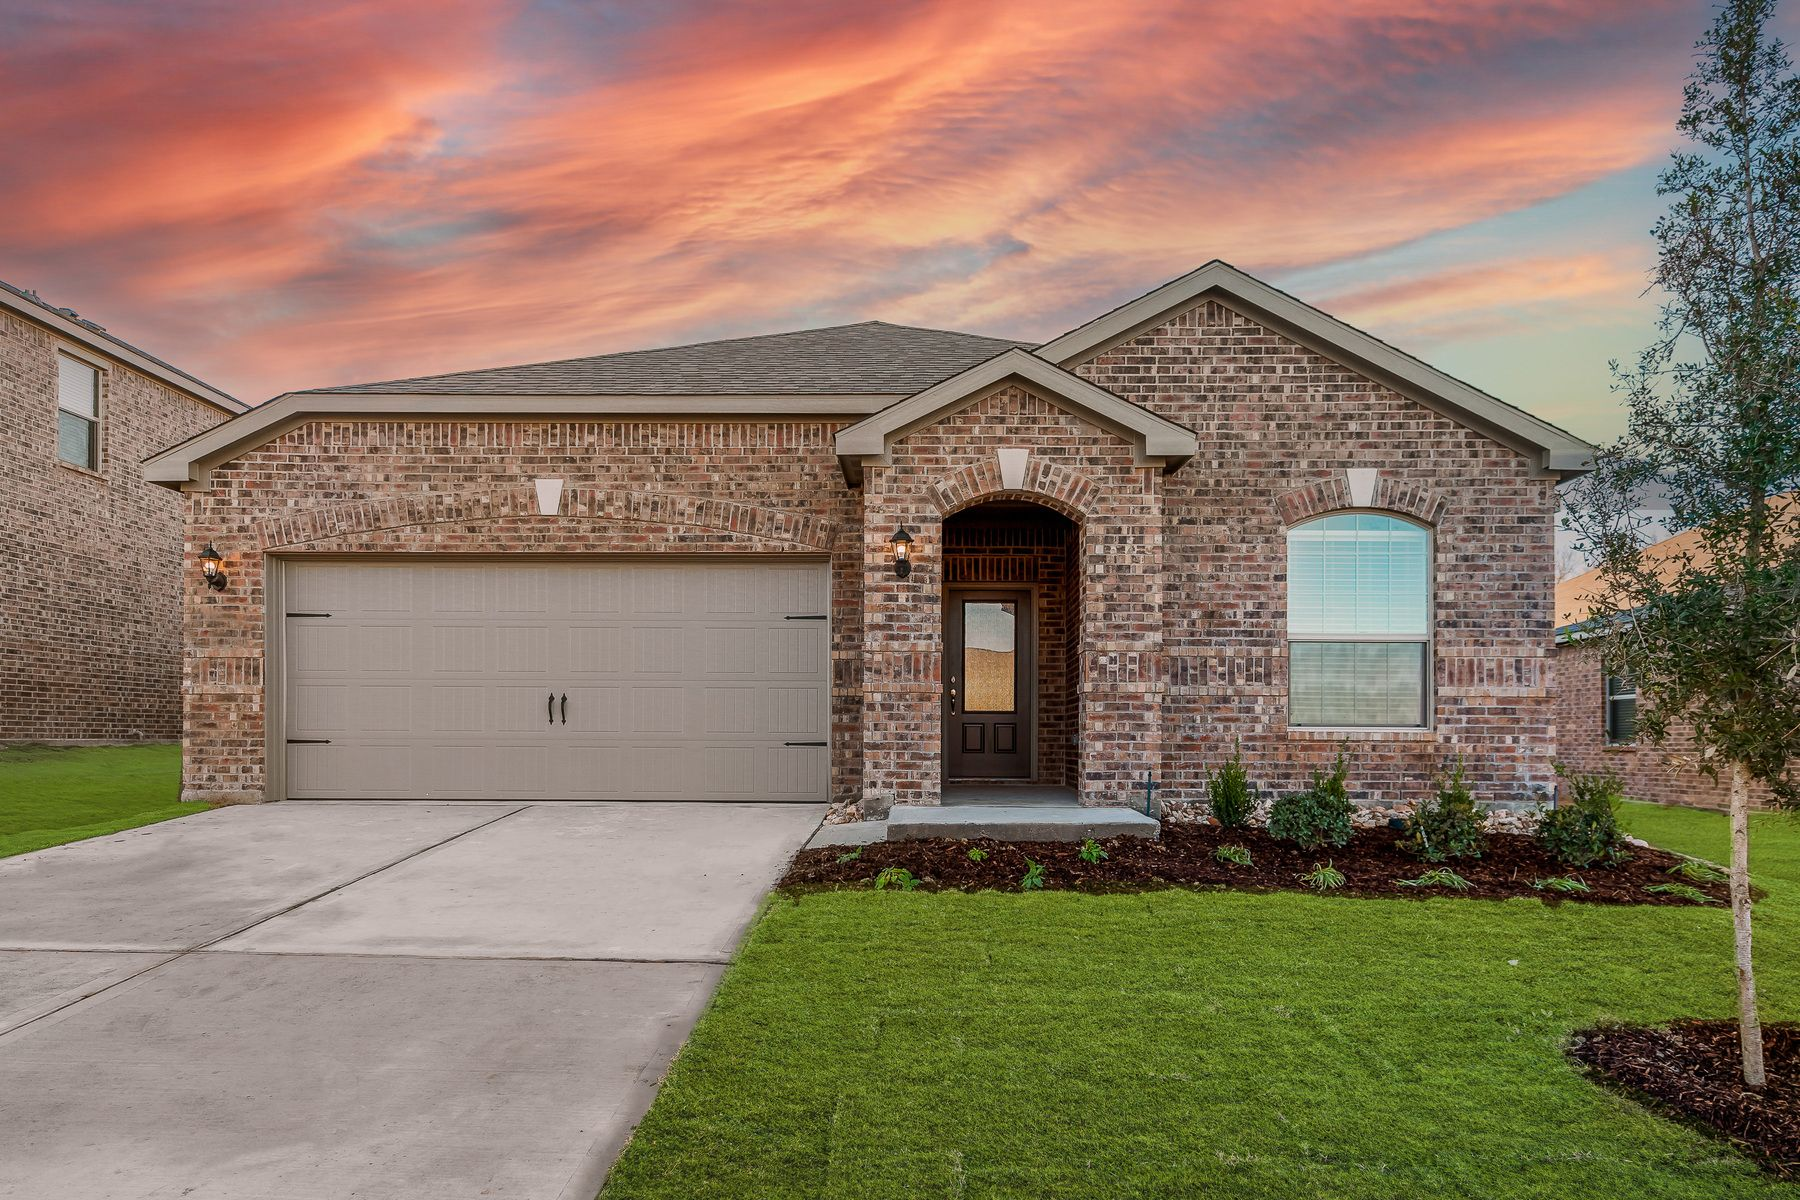 The Topeka by LGI Homes:The Topeka has incredible curb appeal!